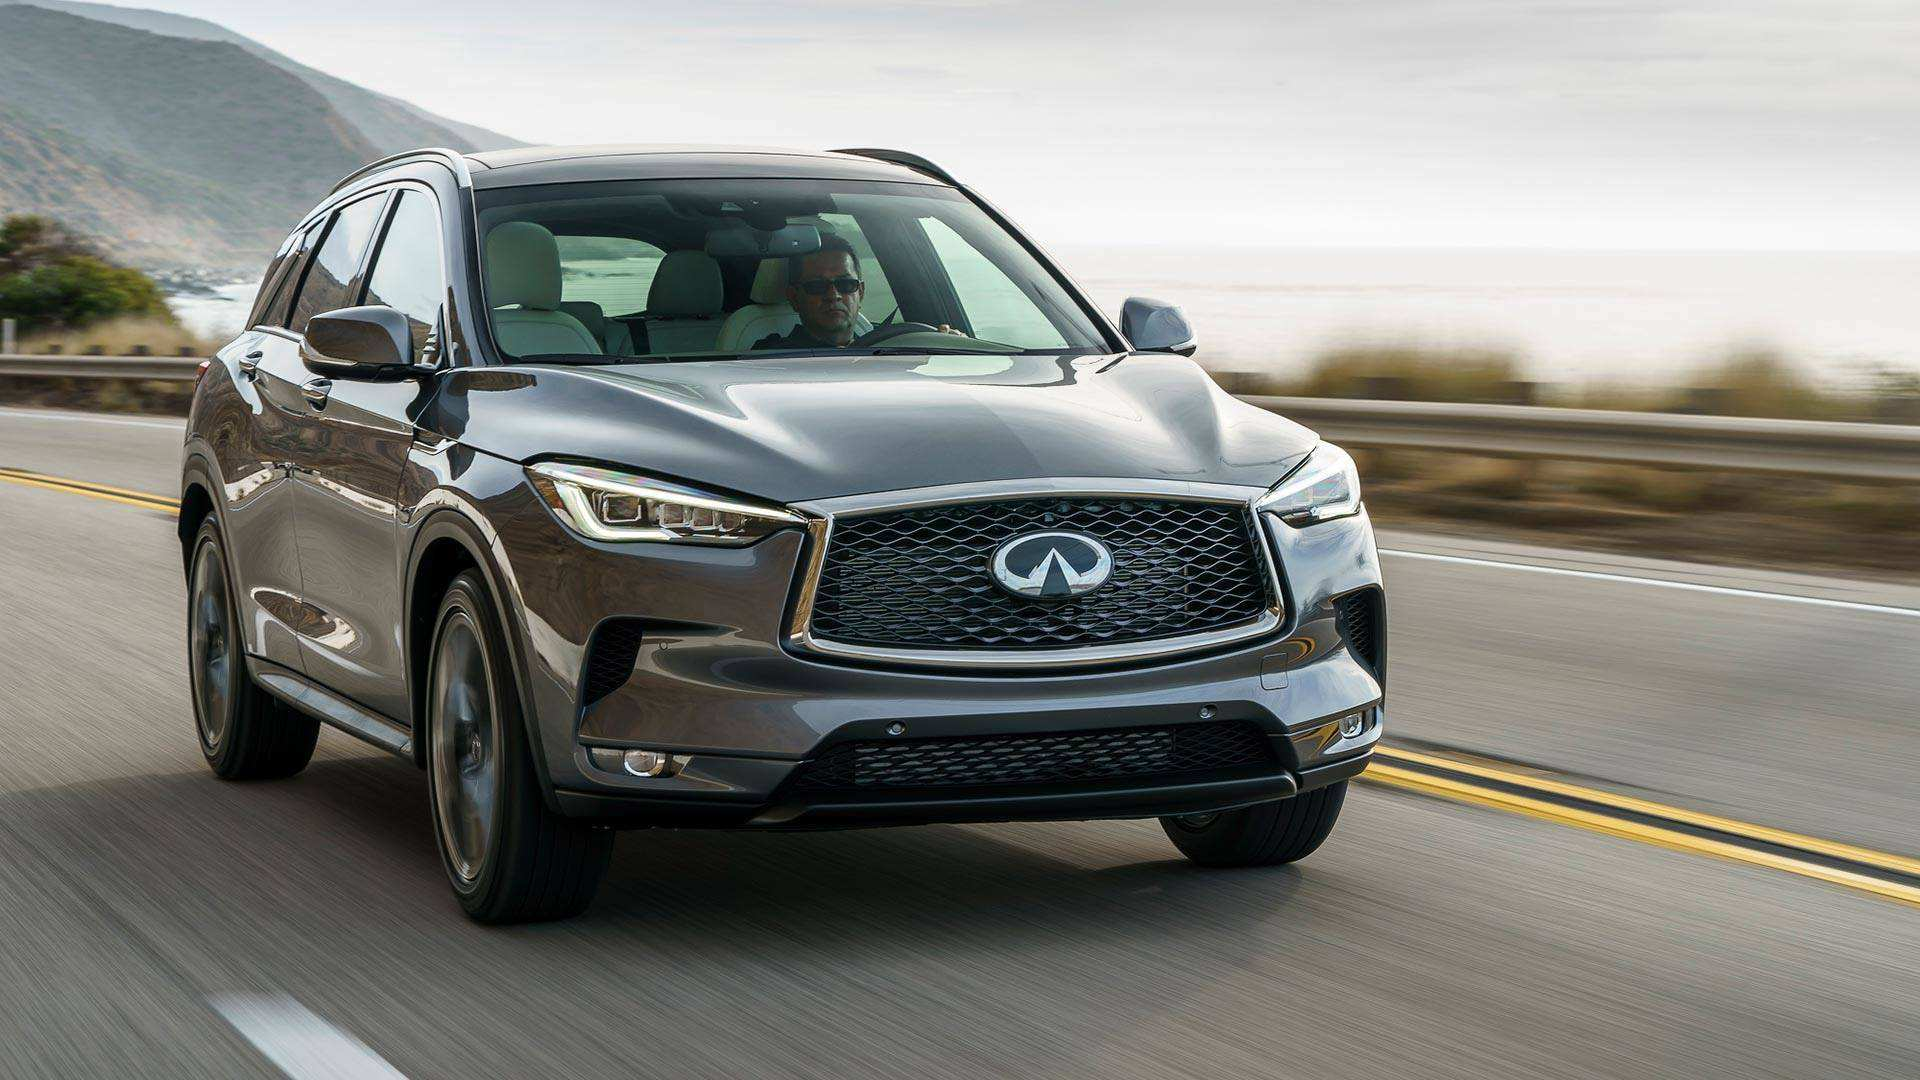 88 New 2019 Infiniti Qx50 Weight Photos with 2019 Infiniti Qx50 Weight